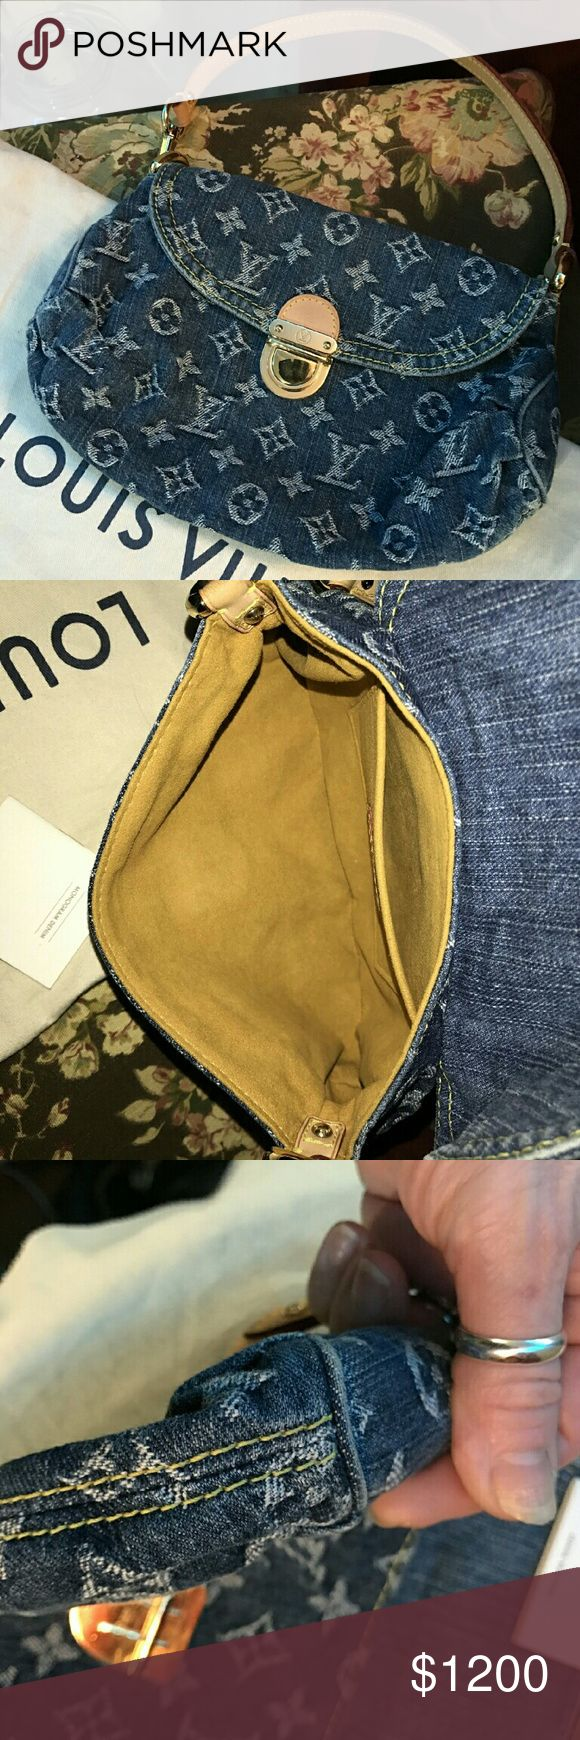 Louis Vuitton Denim Mini Shoulder Bag Authentic Louis Vuitton Denim Mini Shoulder Bag, never worn. Bag is Pristine, never carried, just stored. Comes with Booklet  and Dustbag. Louis Vuitton Bags Shoulder Bags